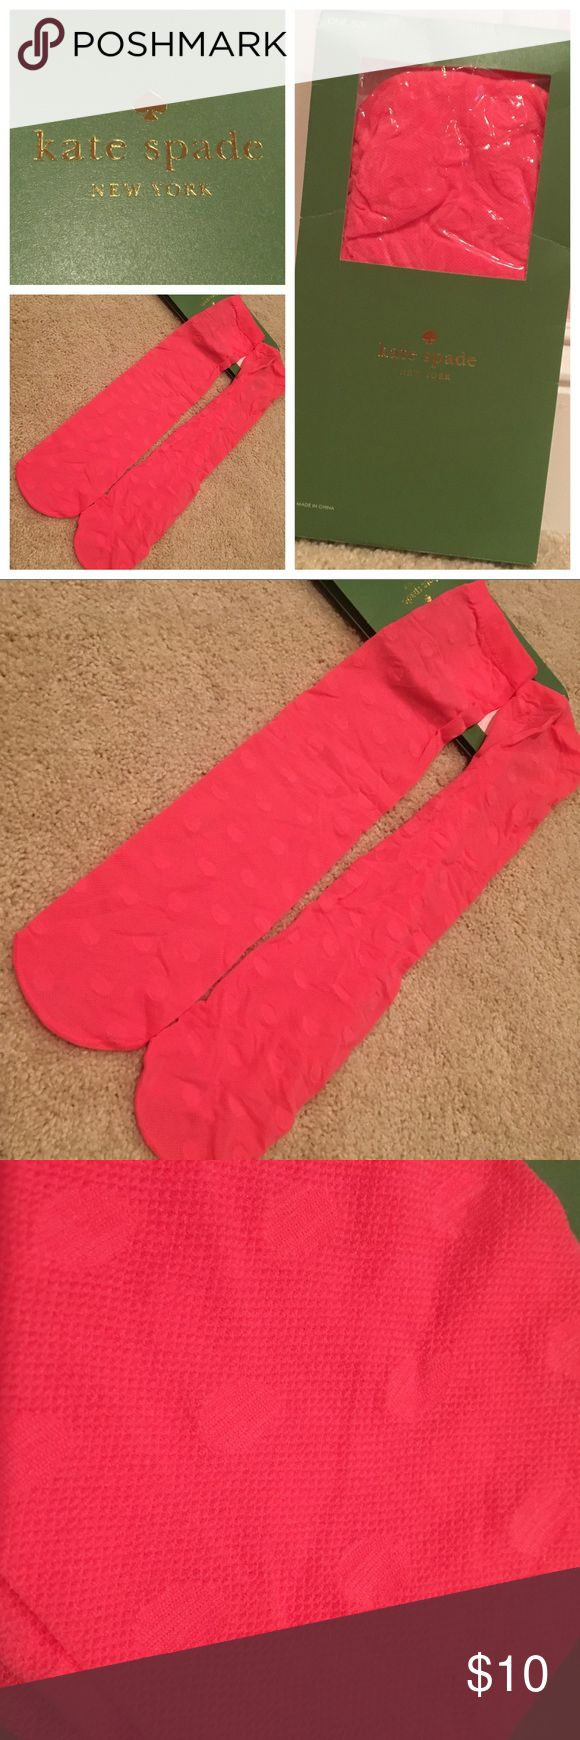 NWT Kate Spade KneeHigh Nylon Socks Pink Polka Dot New, never been worn Kate Spade nylon knee highs in hot pink! Been taken out of the package but they are brand new. They are made of a hosiery material so they are slightly sheer with polka dots. kate spade Accessories Hosiery & Socks